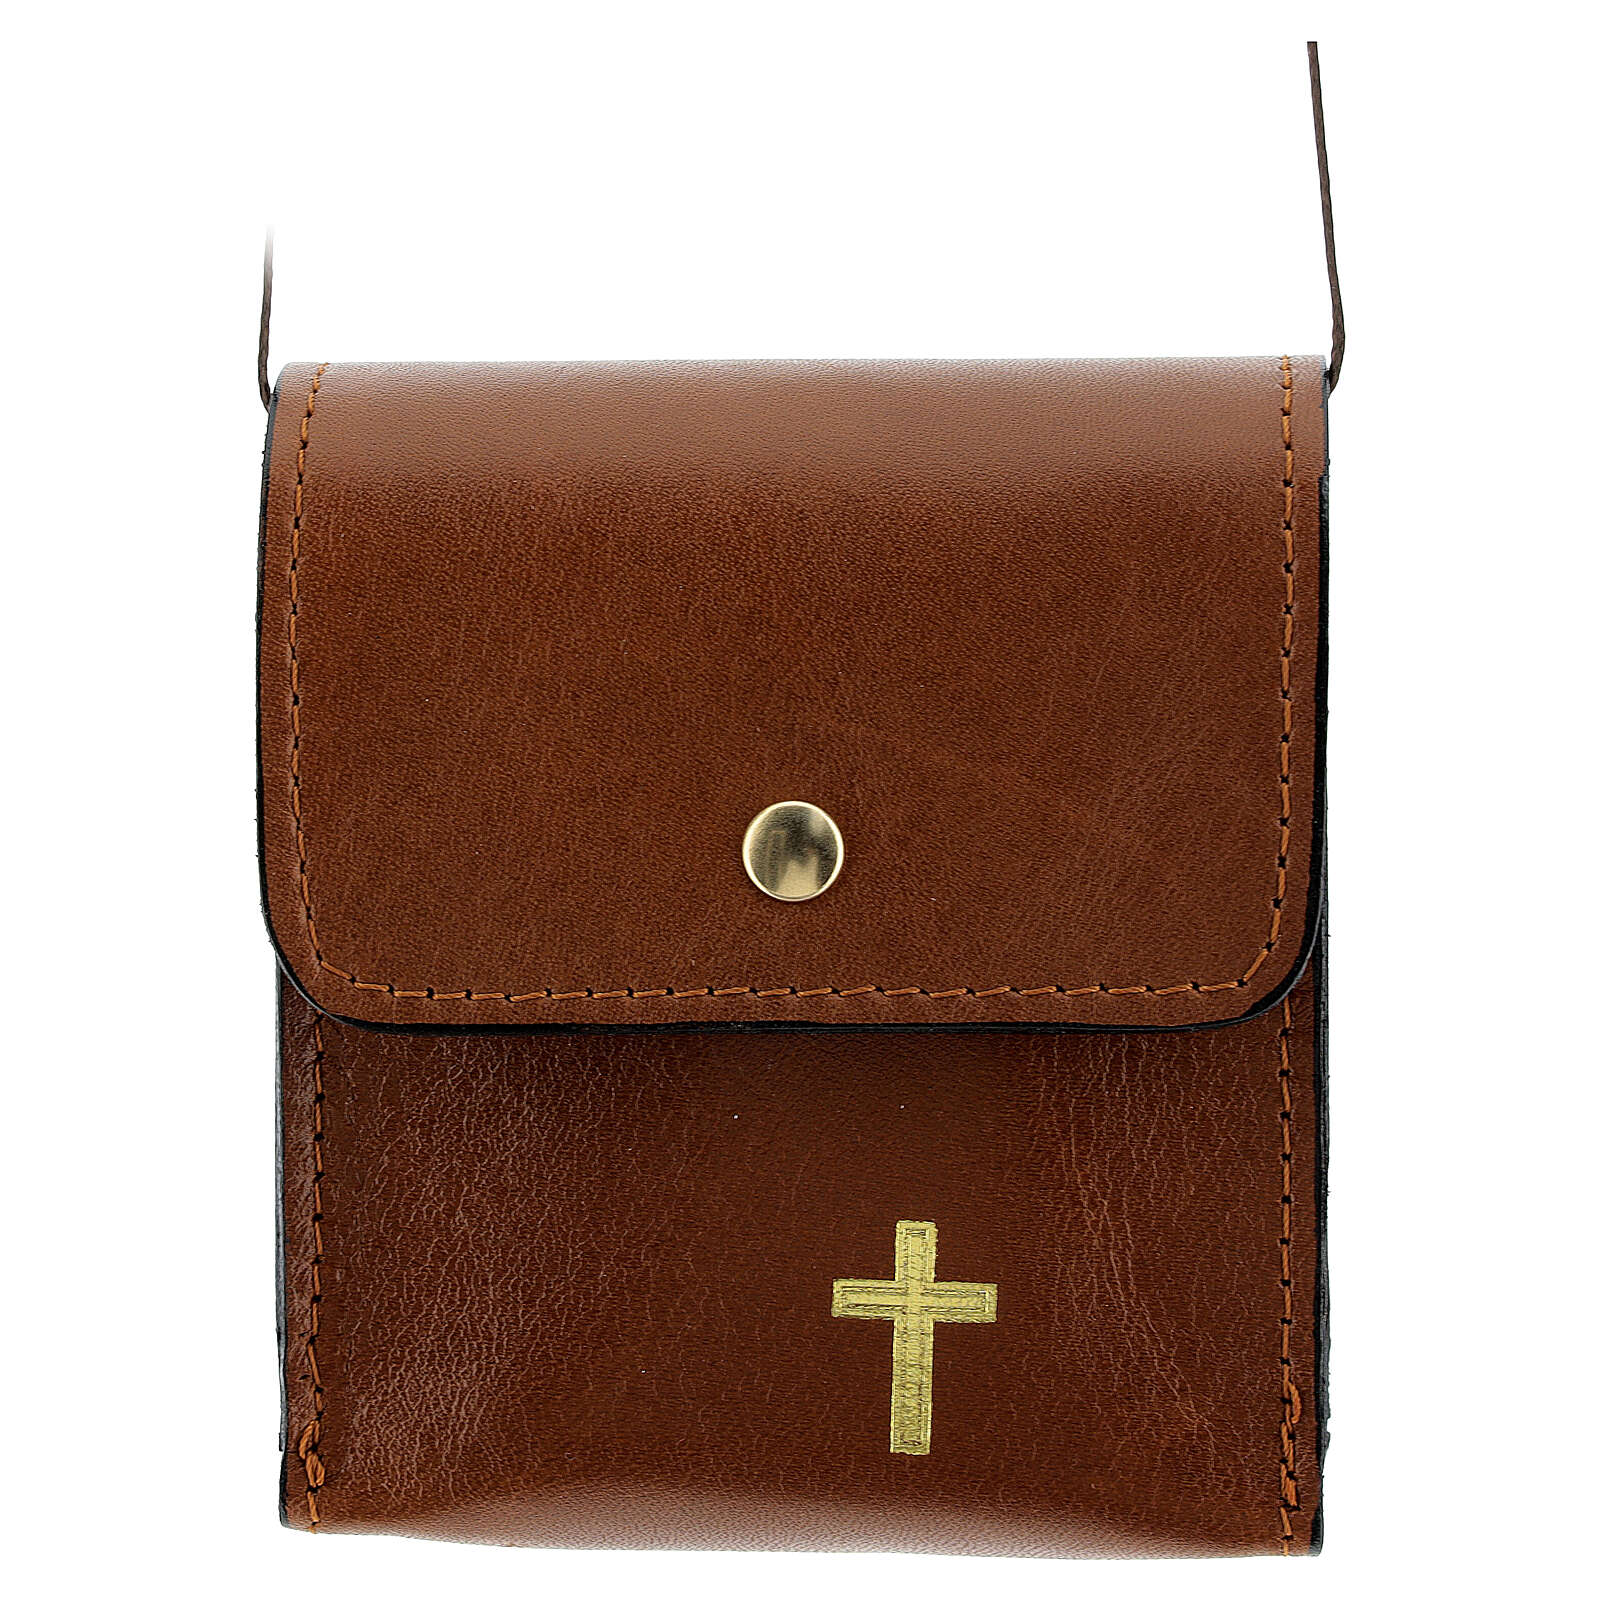 Paten case 9x9 cm in brown leather 4